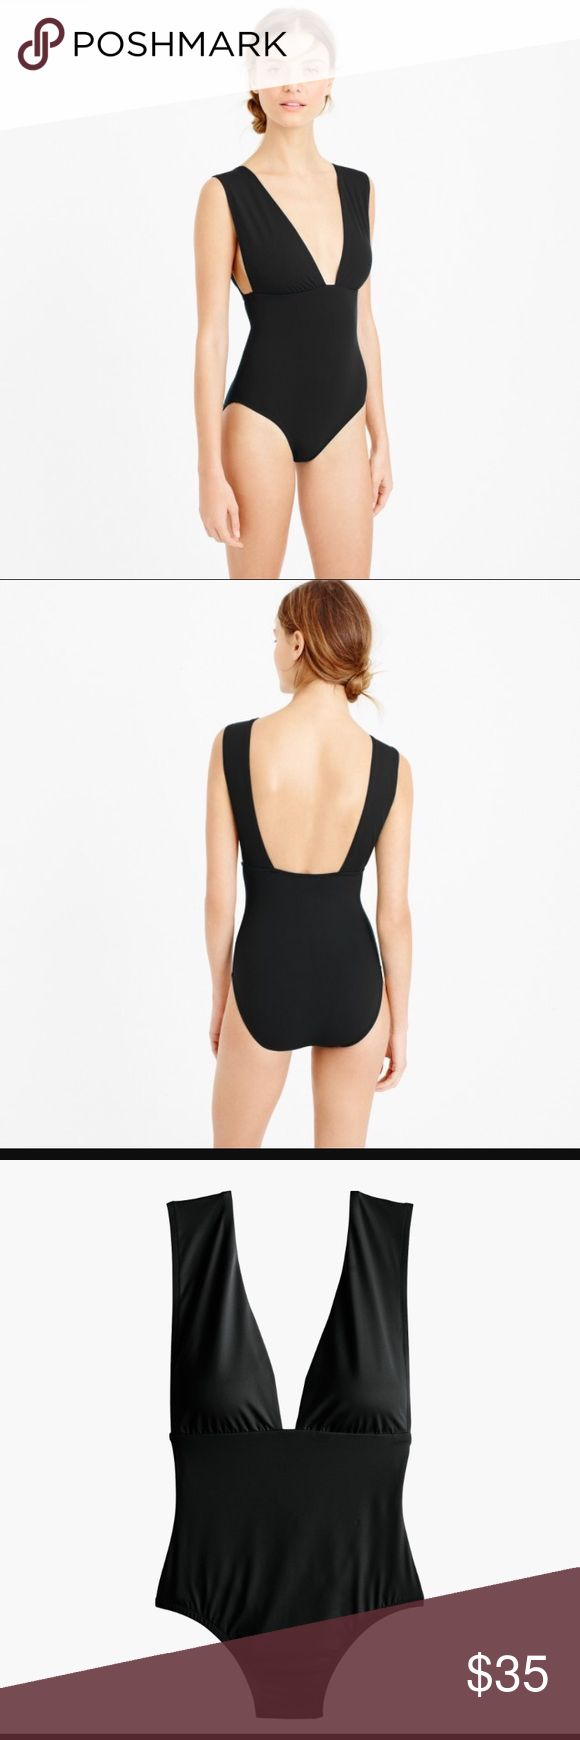 Jcrew plunging V swimsuit sz 10 EXCELLENT LIKE NEW condition. Worn ONCE. I love this swimsuit but it's too revealing for a busty woman. NOT recommended for larger bra sizes. Major side boob!!!! Unless you're just taking selfies and having drinks by the pool/beach. I'd change for jet skiing 🤷♀️😬😂😝 J. Crew Swim One Pieces